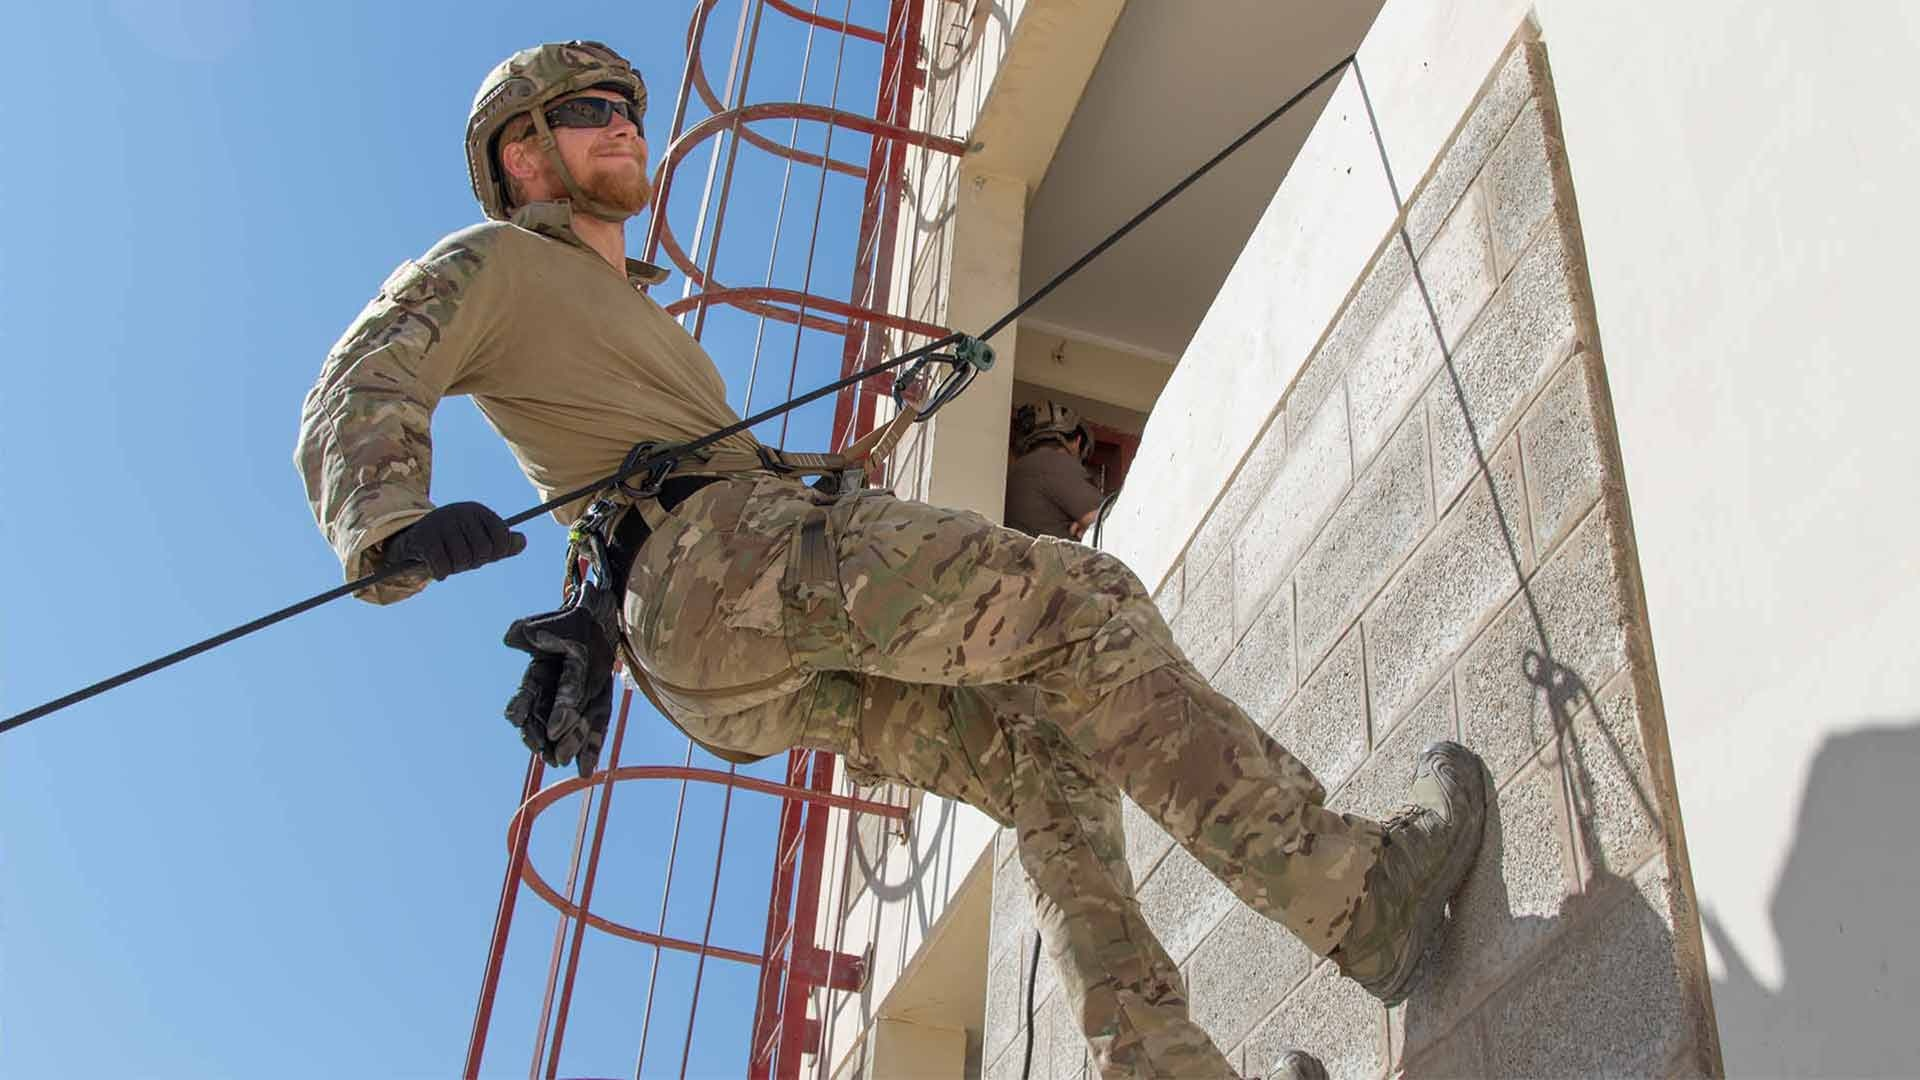 Airmen with the U.S. Air Force Special Operations Command, Special Tactics Troop 2610 conduct joint training with Jordan Armed Forces in urban high angle rescue techniques at King Abdullah II Special Operations Training Center in Amman, Jordan, on Aug. 21, 2019.